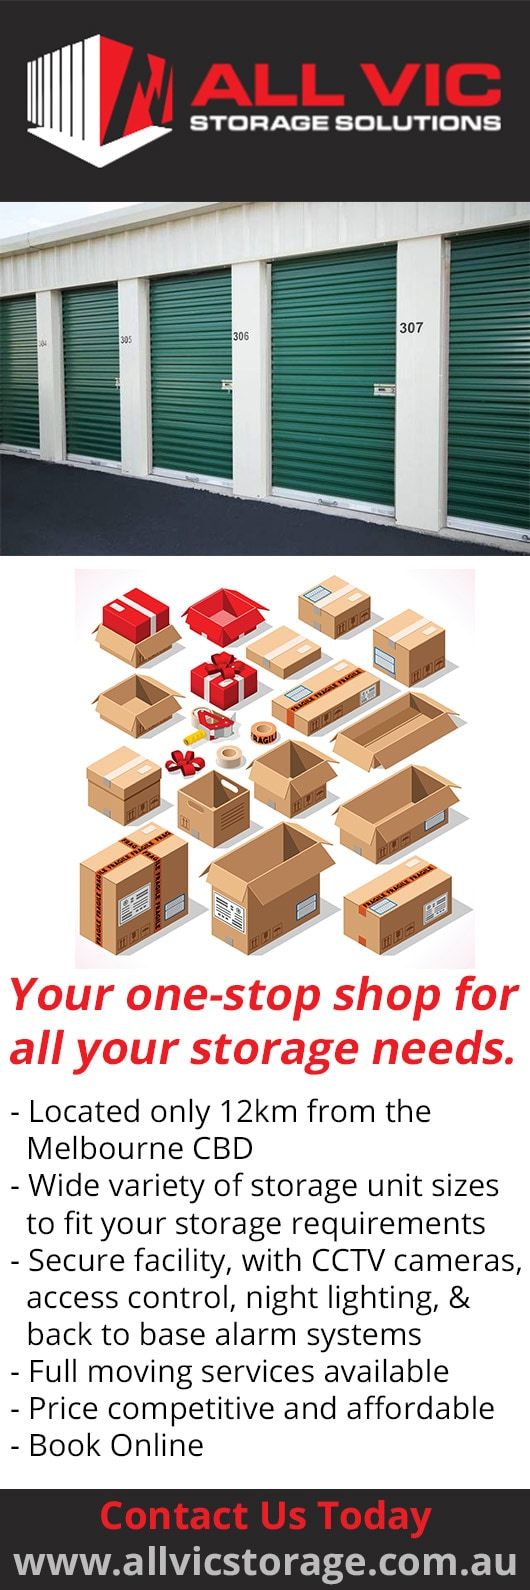 All Vic Mobile Storage - Promotion & All Vic Mobile Storage - Storage Solutions - PRESTON